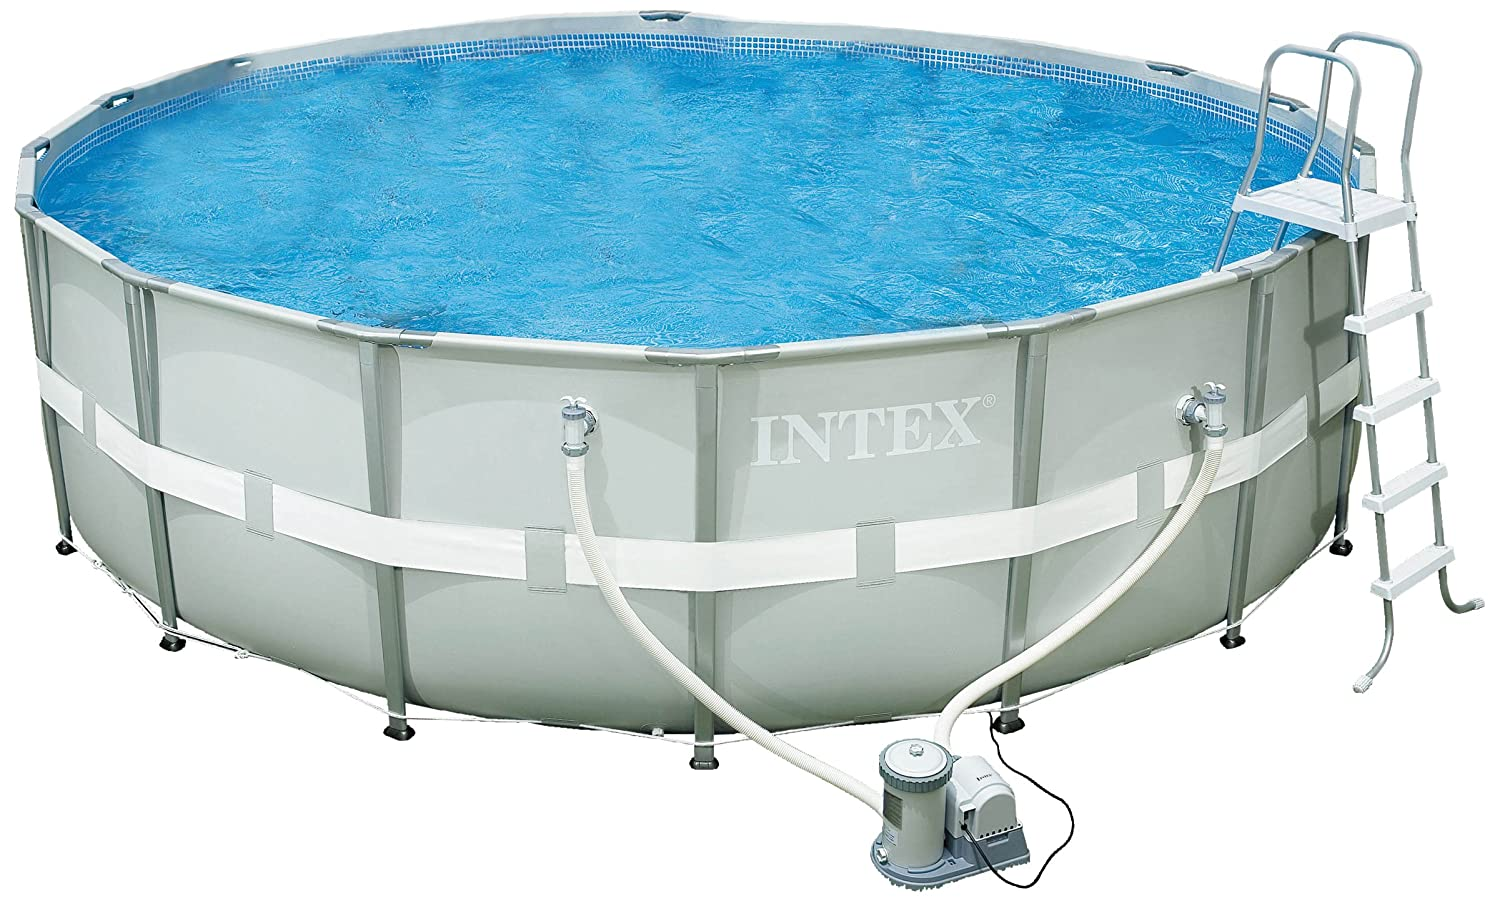 amazoncom intex 18 foot by 52 inch ultra frame pool set patio lawn garden